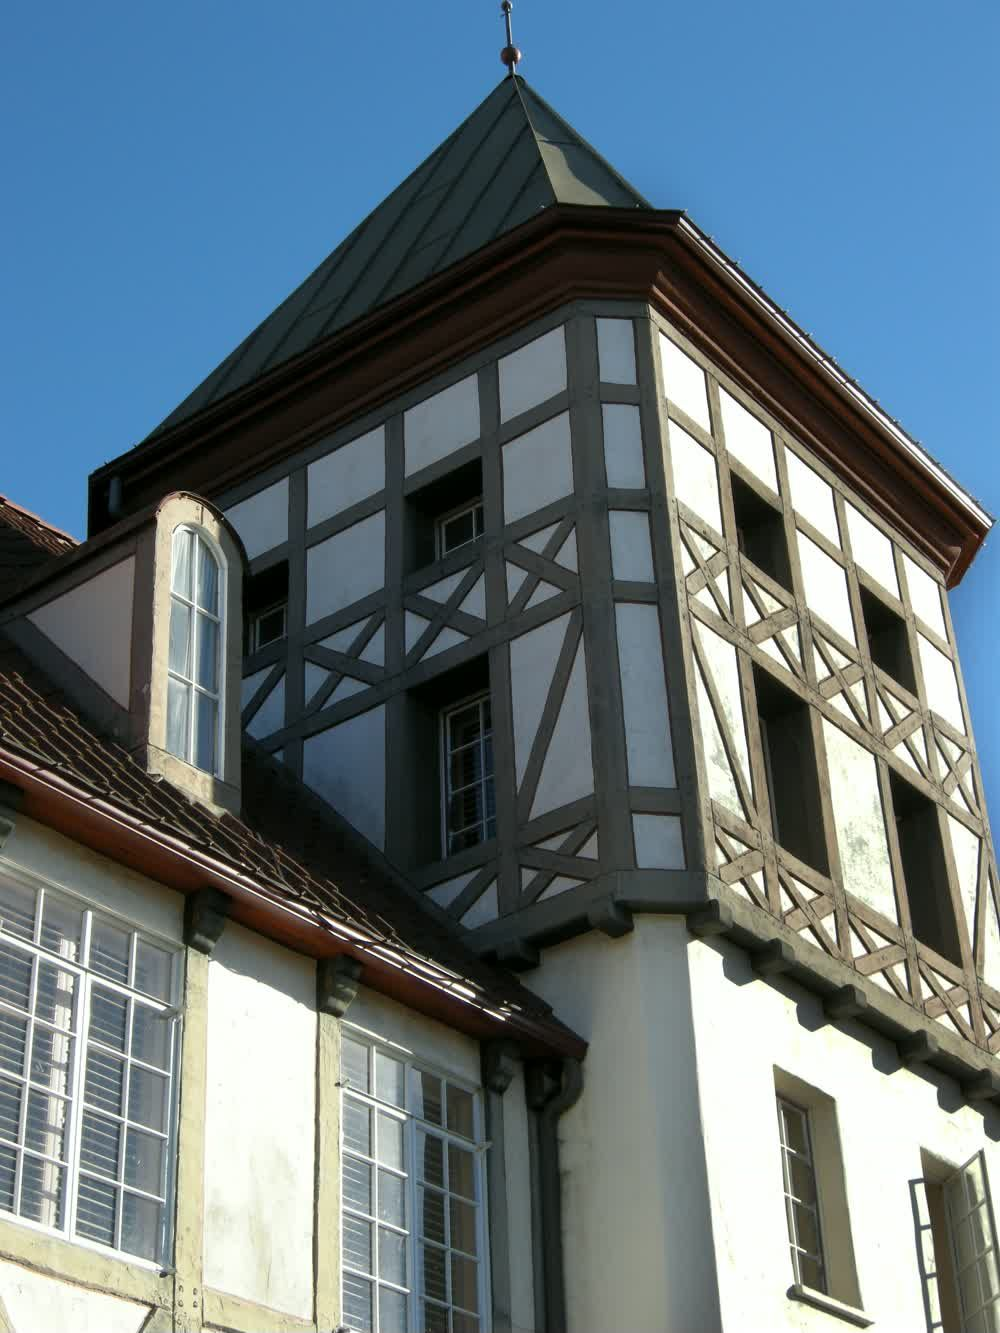 title: Typical Danish Half Timber Frame Architecture